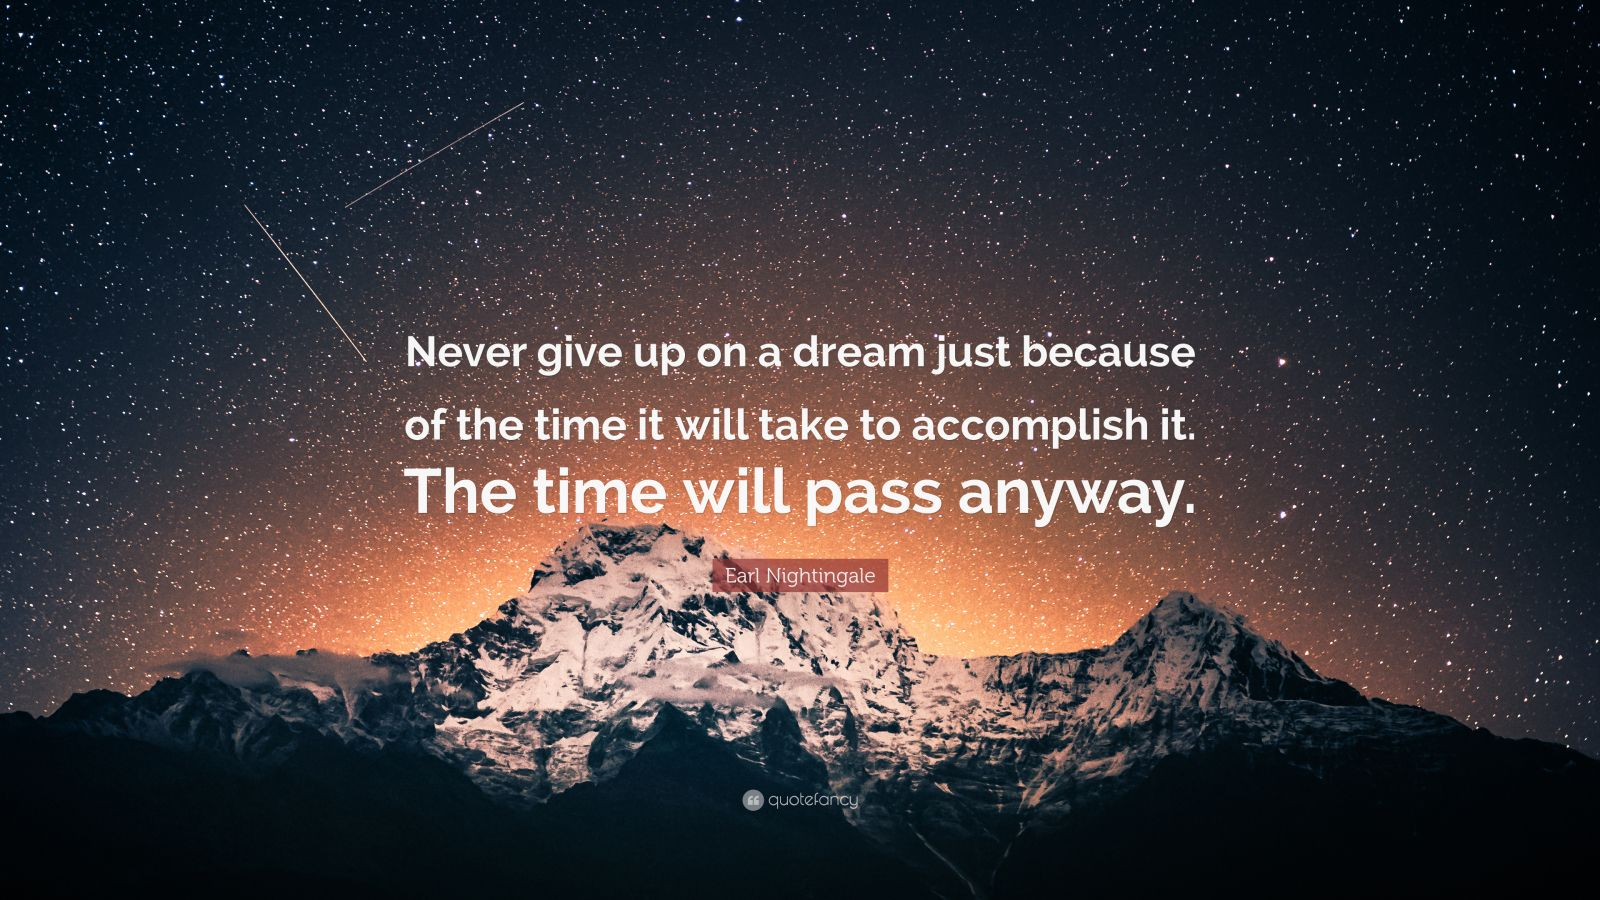 Motivational Quotes: U201cNever Give Up On A Dream Just Because Of The Time It